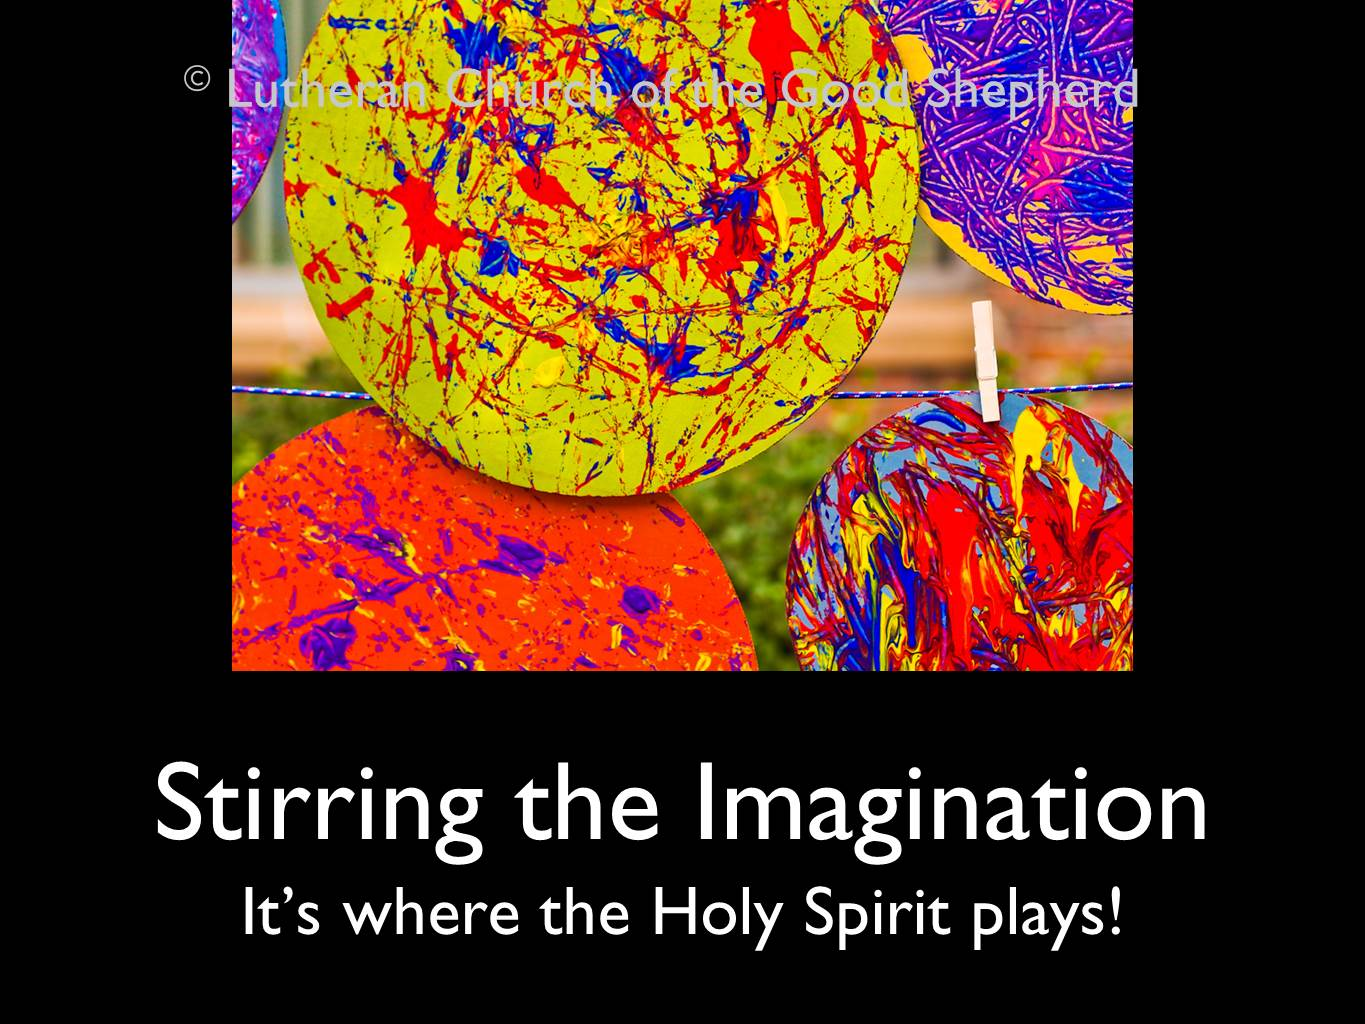 view a presentation from the 2016 Conference for Worship, Theology and the Arts at St. Olaf college. Presented by By Linda Kerker and Brita Taracks.